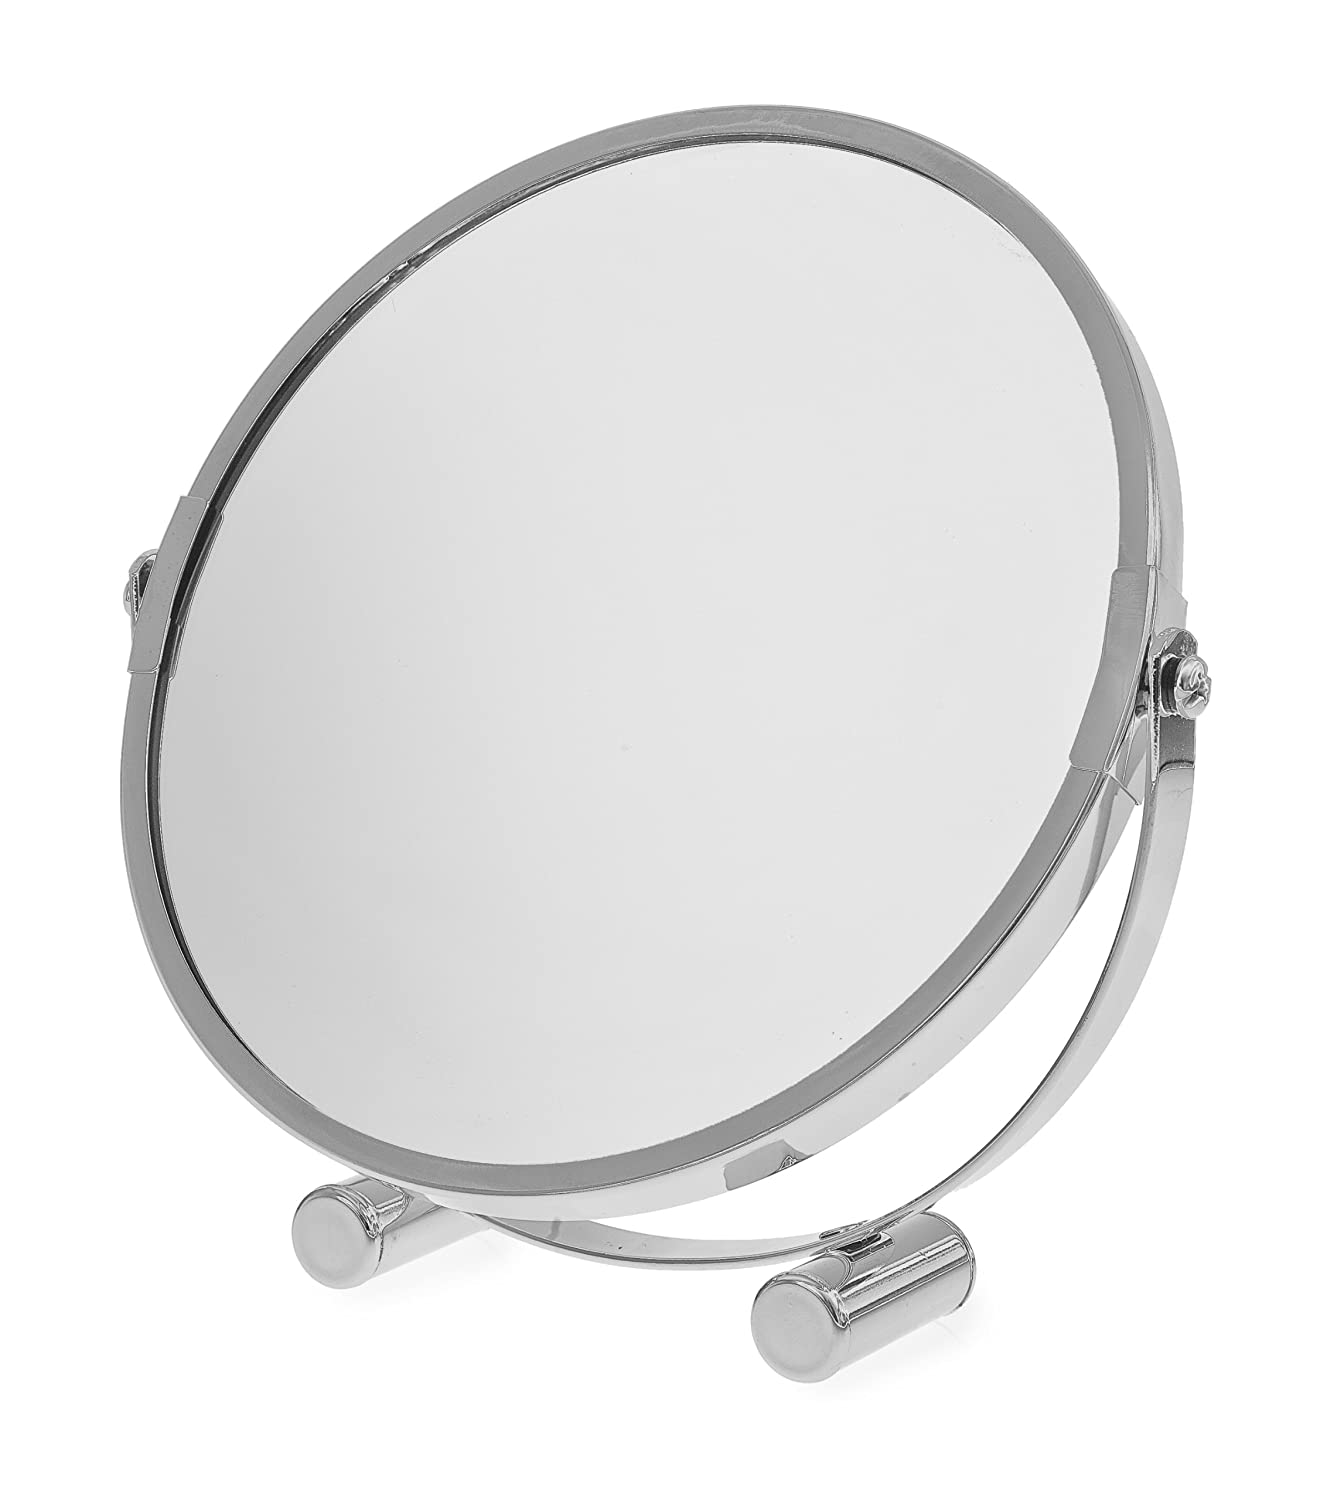 Blue Canyon Free Standing Small Platform Swivel Shaving/ Make Up Mirror BA-121